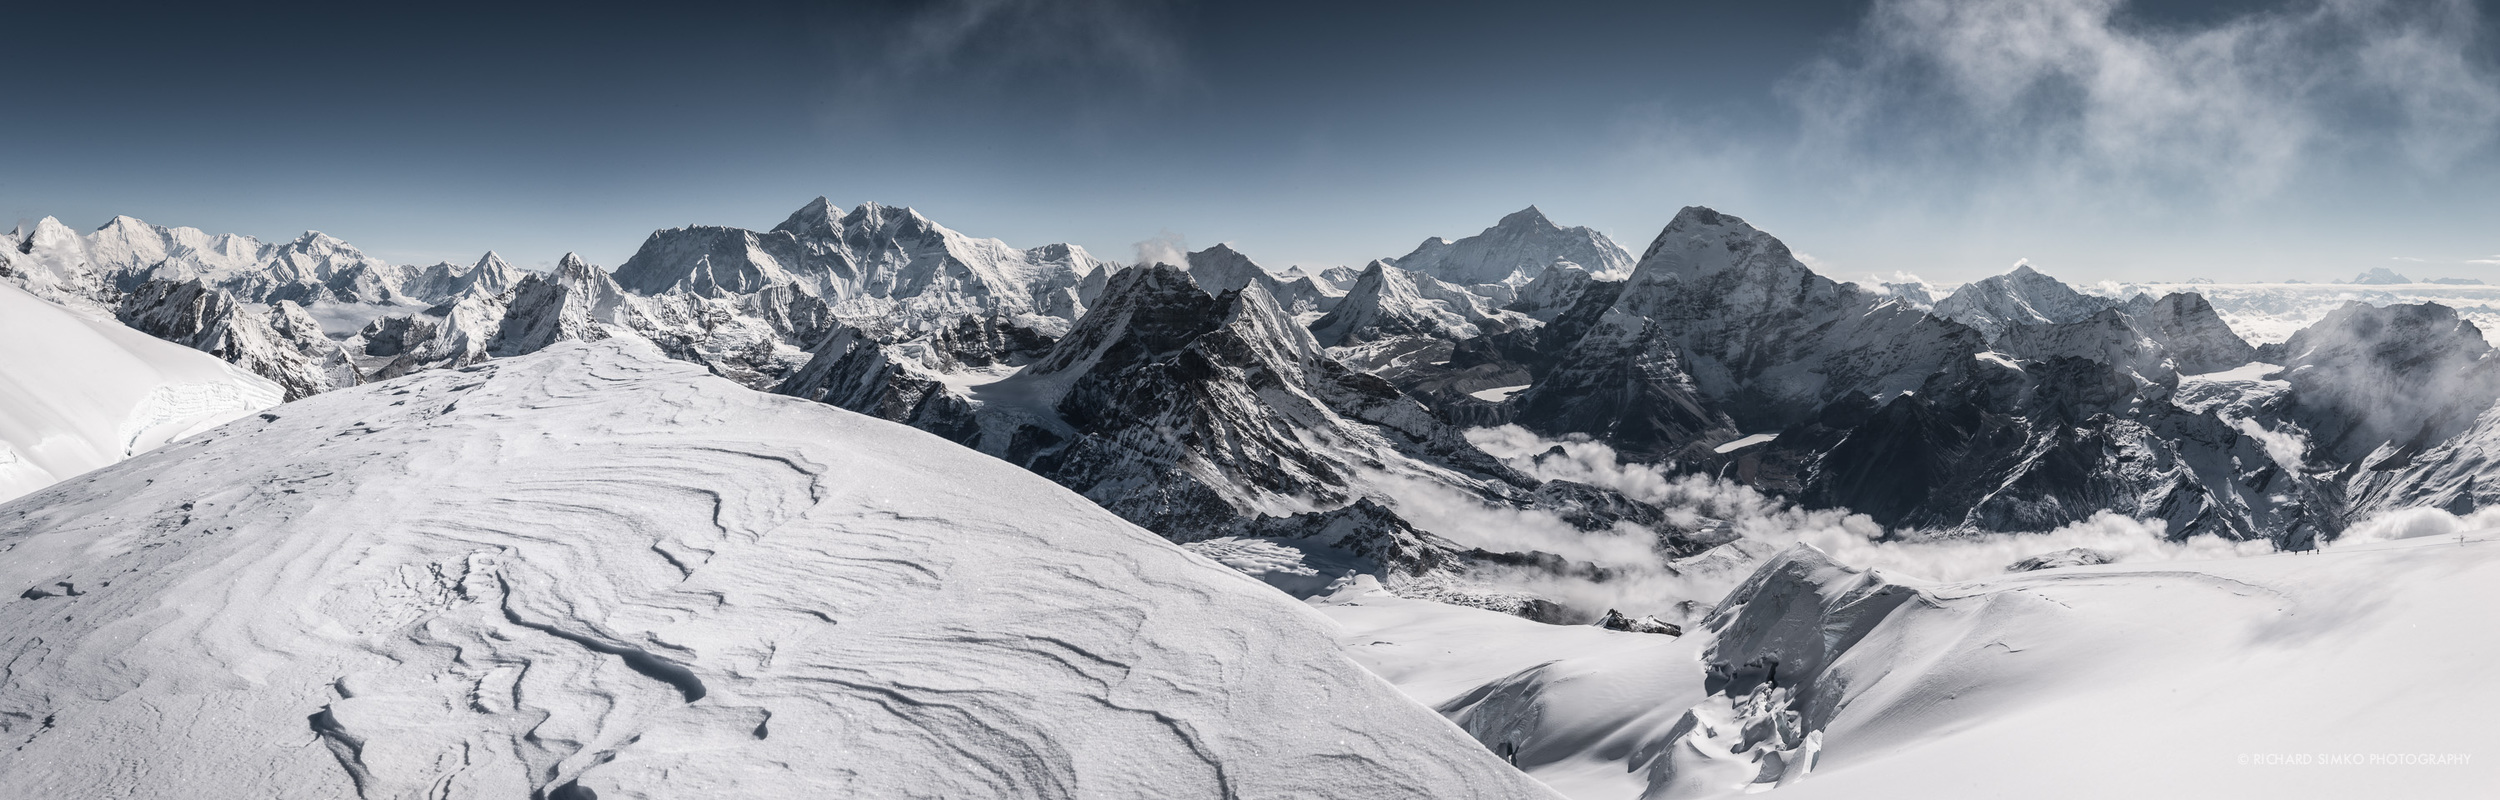 Everest Himalayan range panorama as seen from the summit of Mera Peak. Five eight thousand peaks are visible from this vantage point. From left it is Cho Oyu, Mt Everest, Lhotce, Makalu and Kanchenjunga.